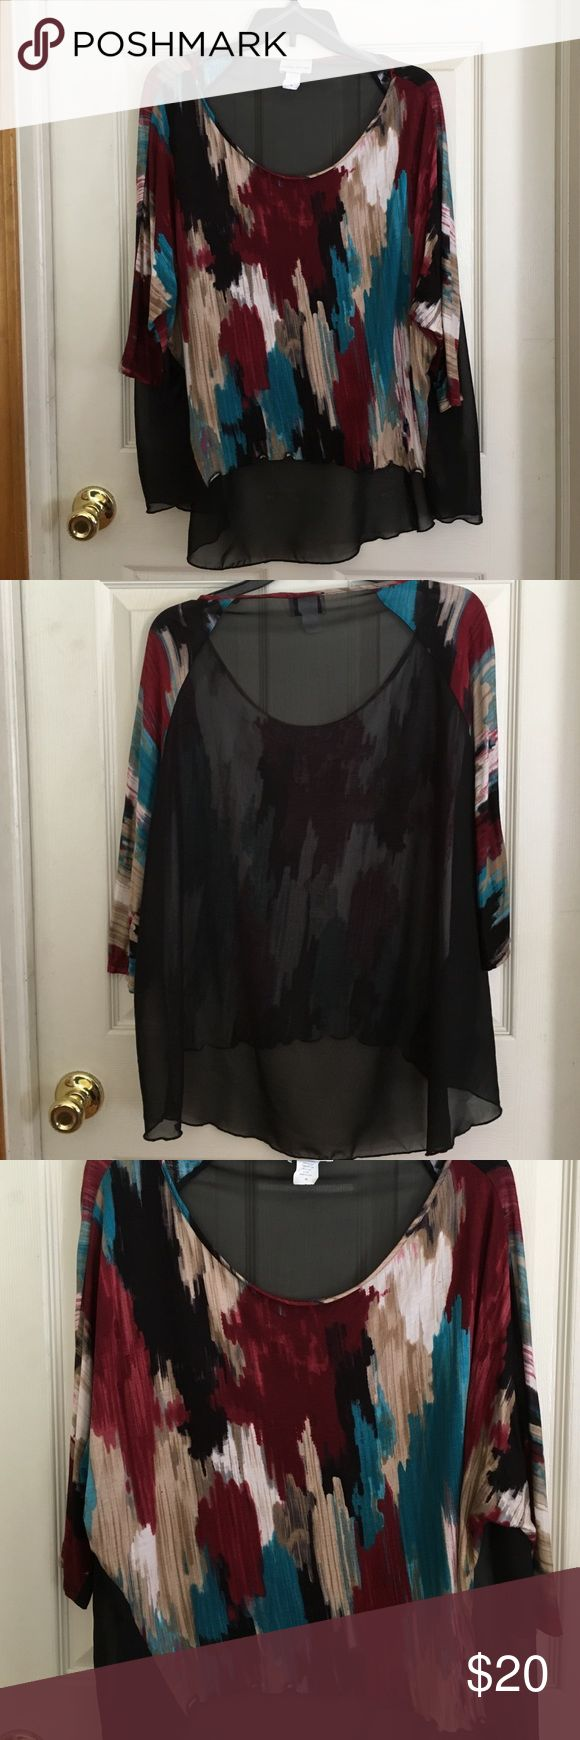 Ladies Plus Size Clothing Multi Colored Hi/Low Style Blouse with Sheer Back size 2X in good condition !!! Caren Sport Tops Blouses